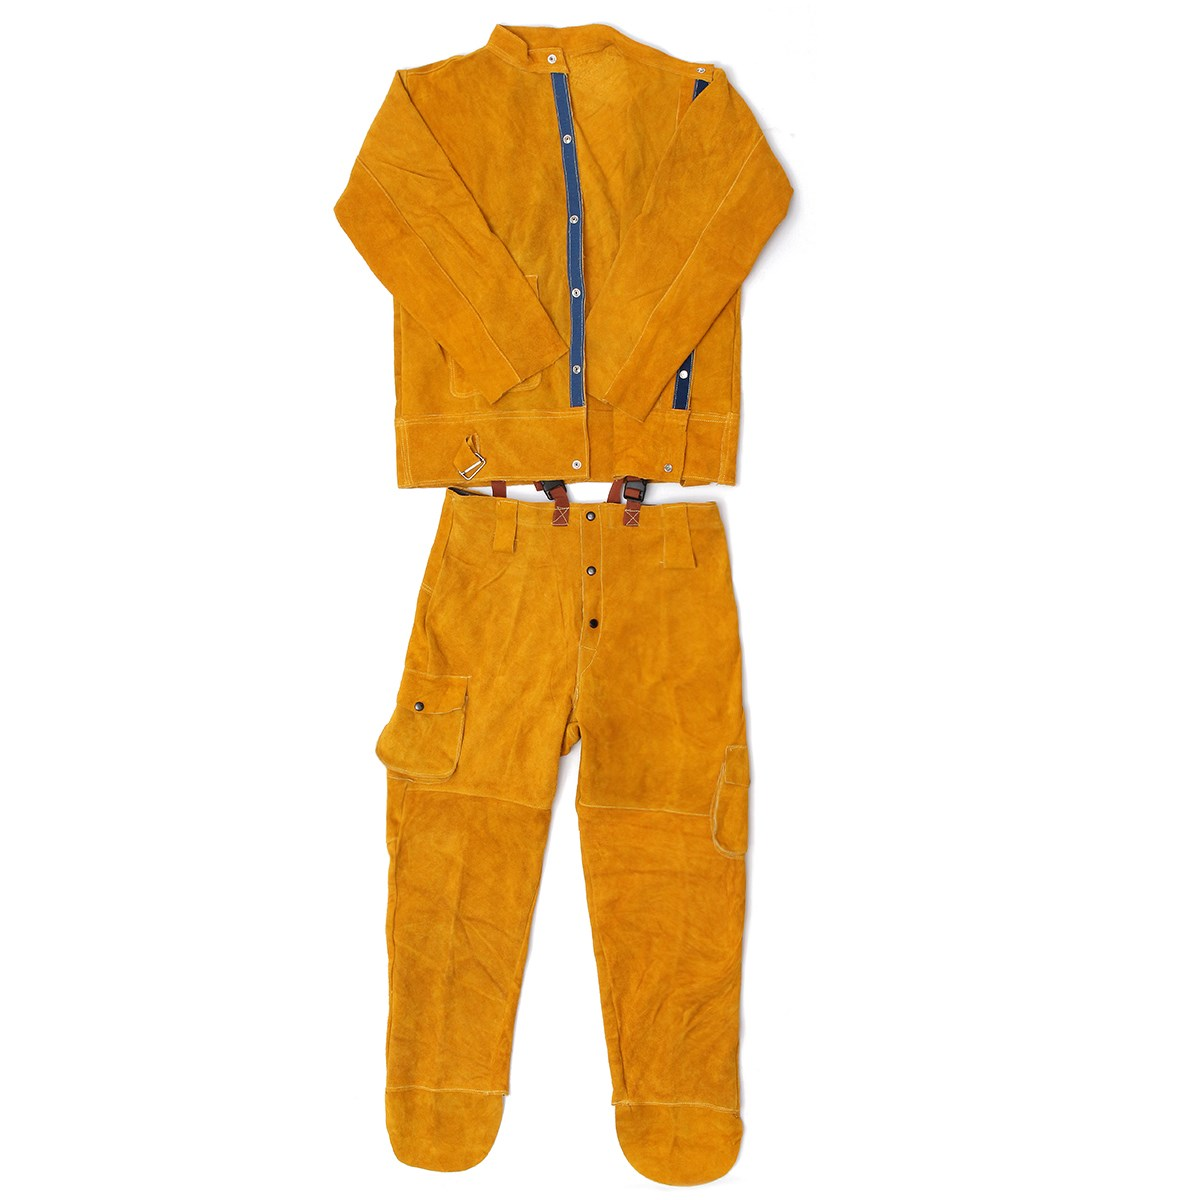 One Set Leather Welding Strap Trousers & Coat Protective Clothing Apparel Suit Welder Safety Clothing leather welding long coat apron protective clothing apparel suit welder workplace safety clothing page 3